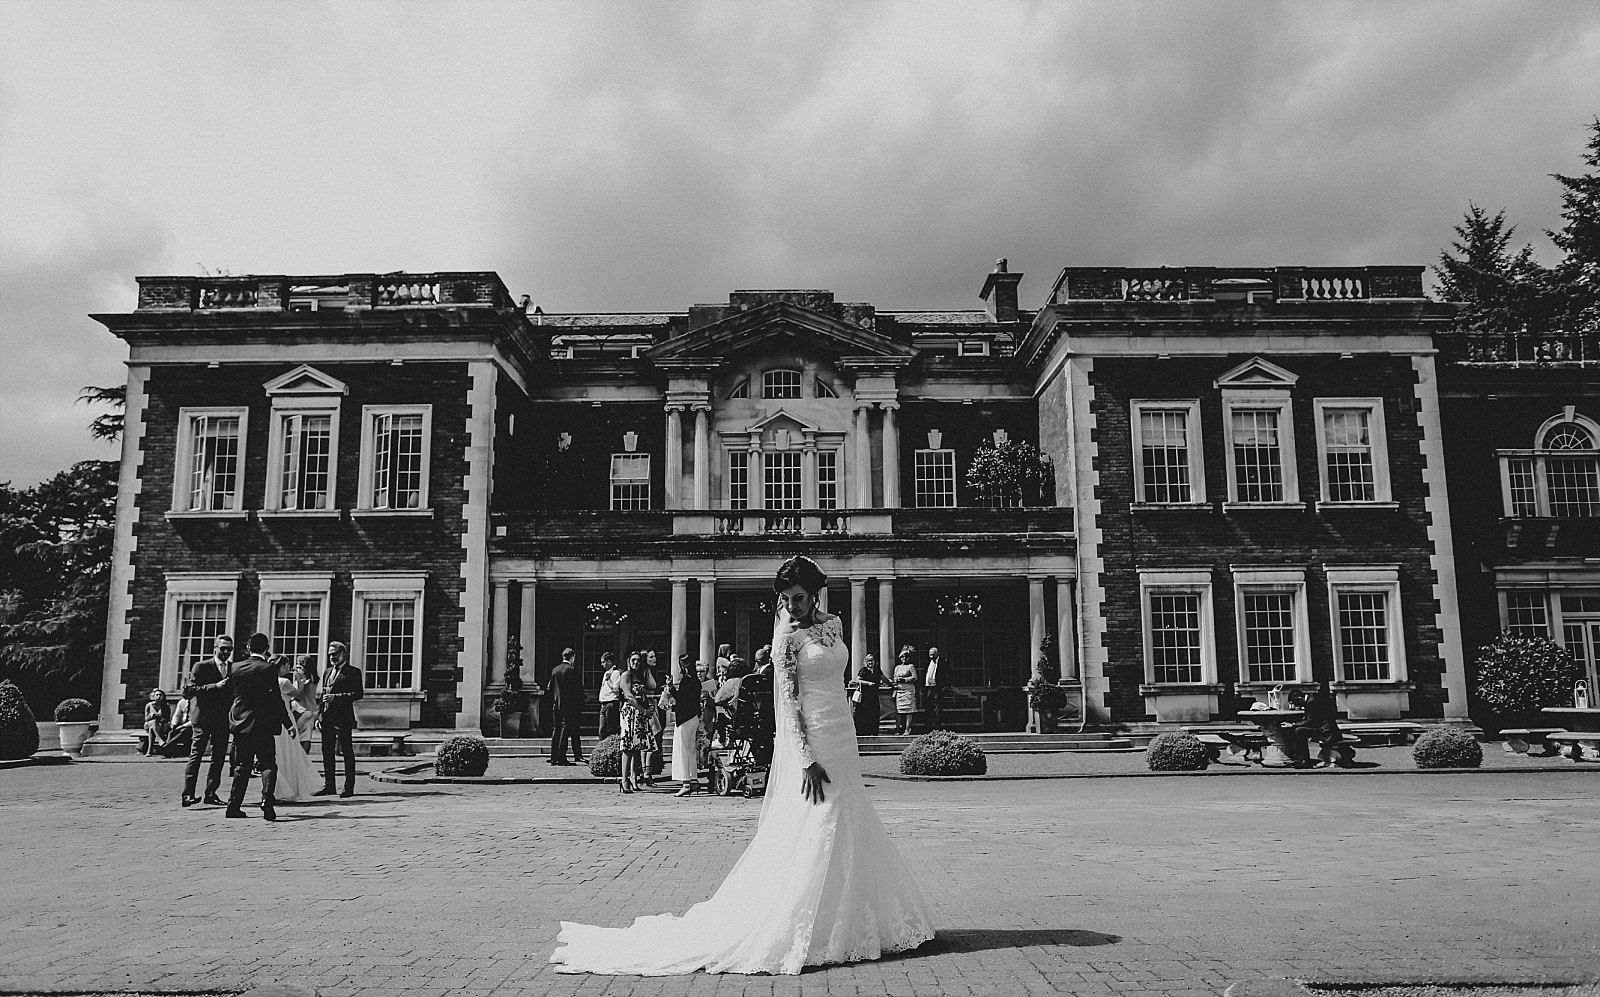 eaves hall wedding photographer captures the bride in front of eaves hall